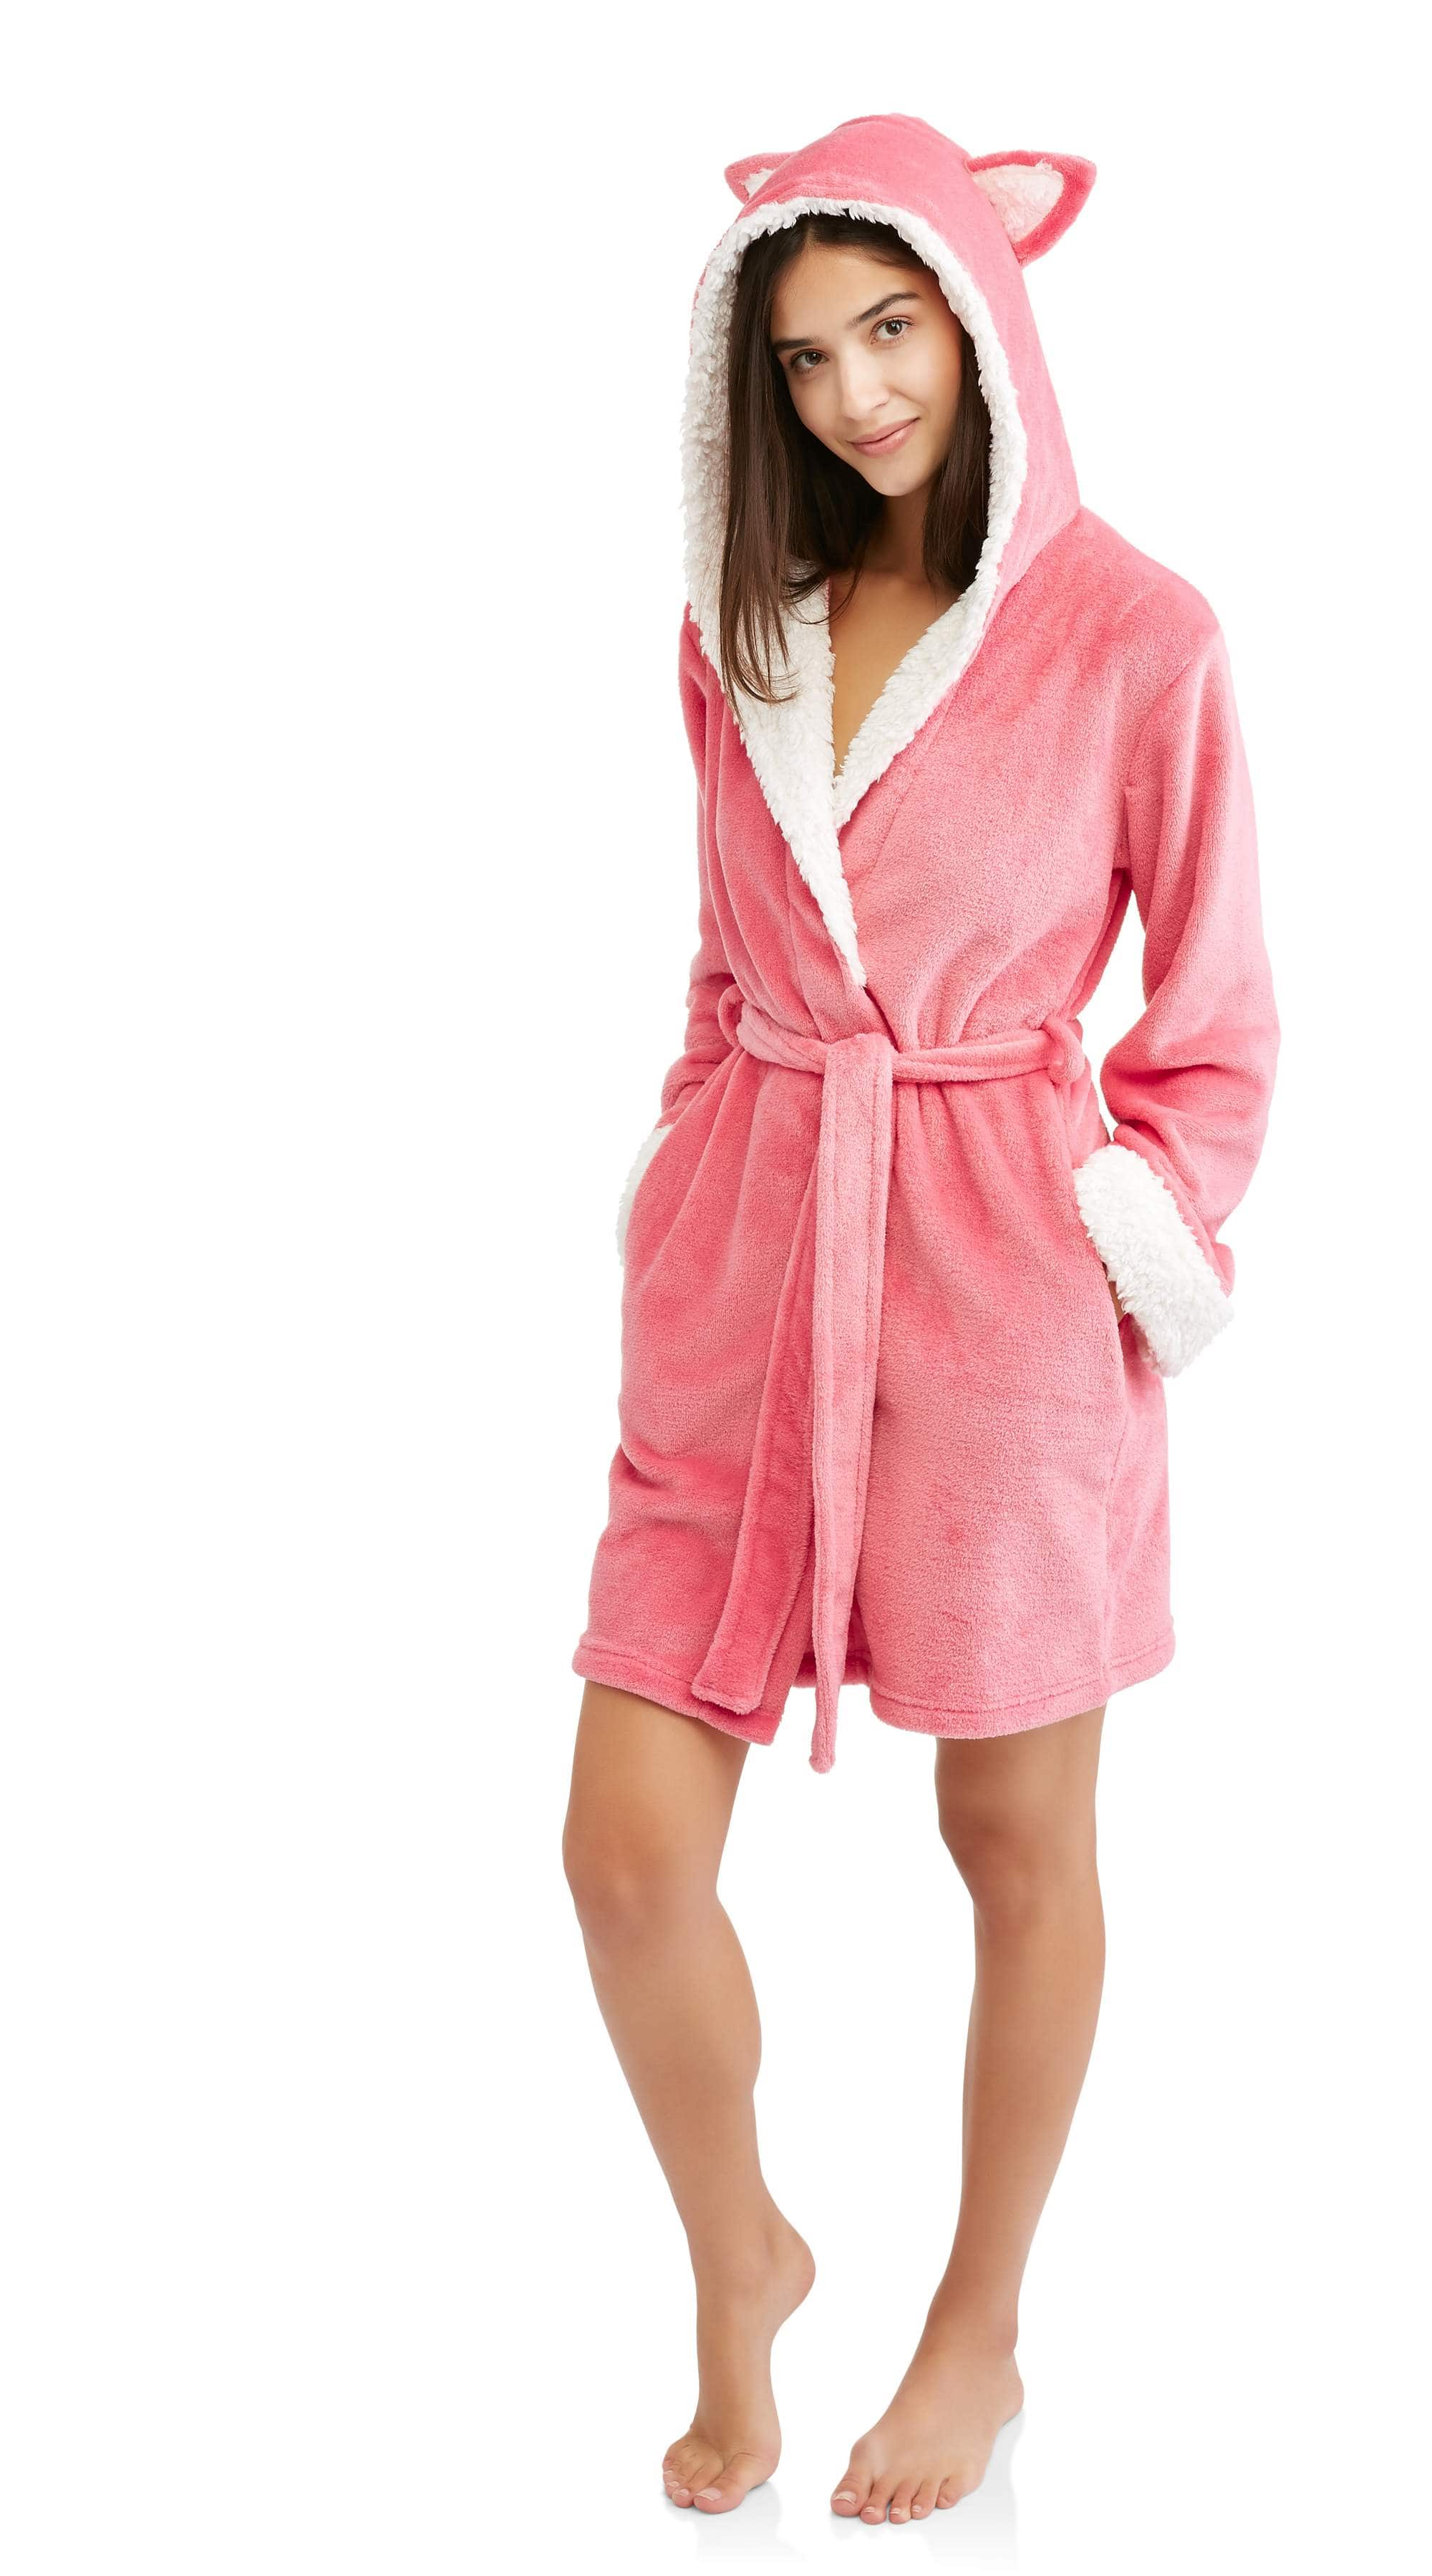 Various women s robes on clearance from  7 -  8 Walmart Free Ship to store 15b5d5899